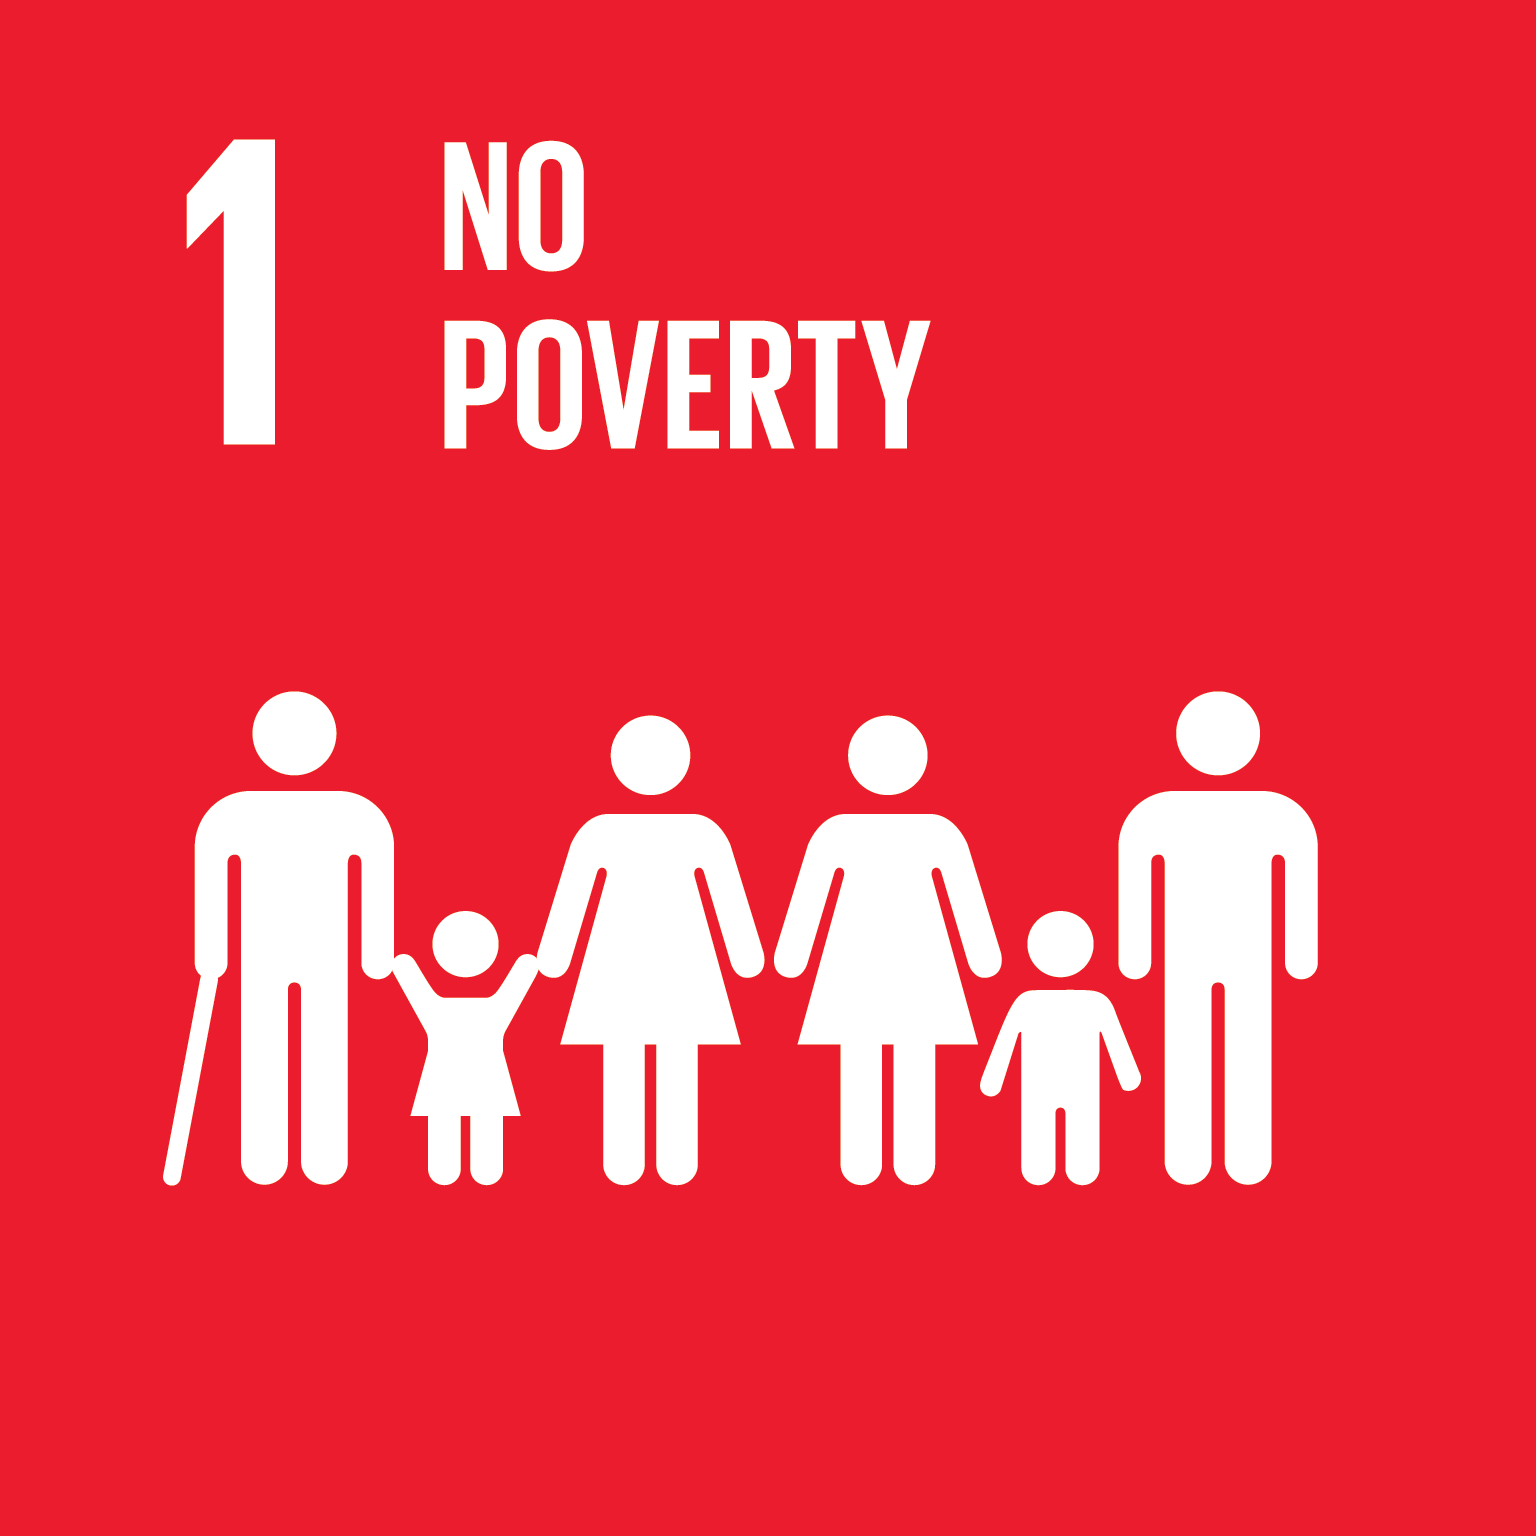 No poverty logo.